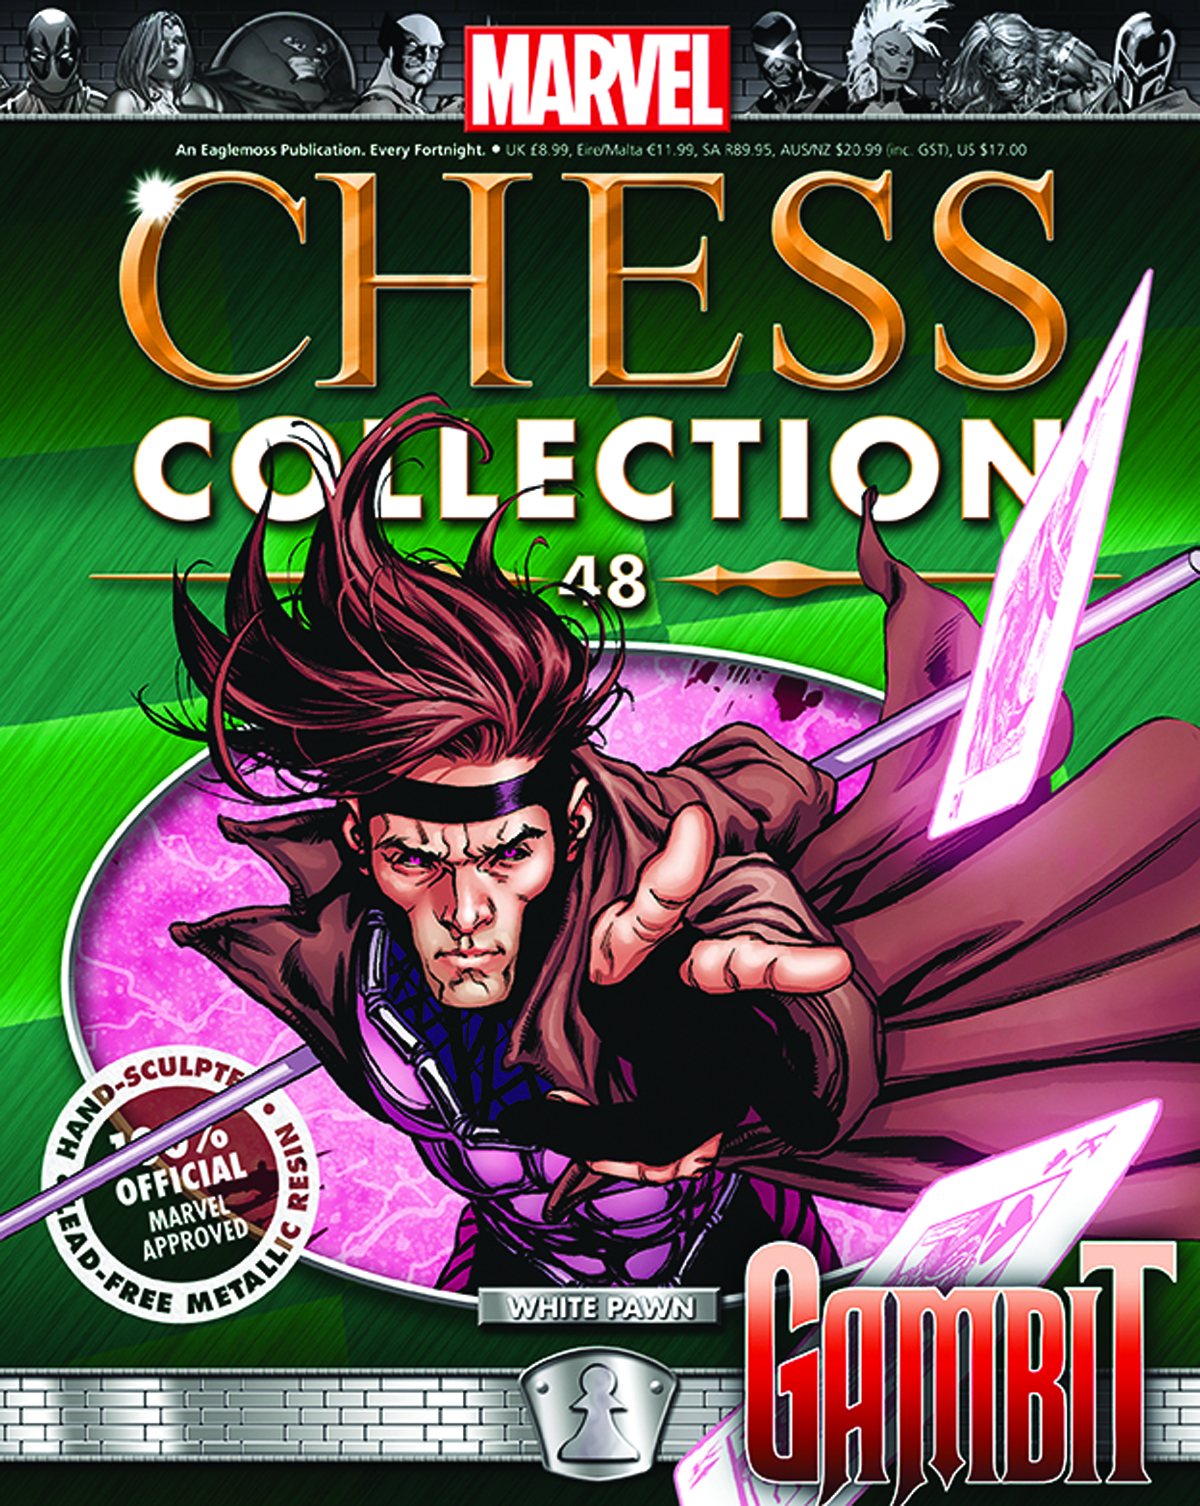 MARVEL CHESS FIG COLL MAG #48 GAMBIT WHITE PAWN